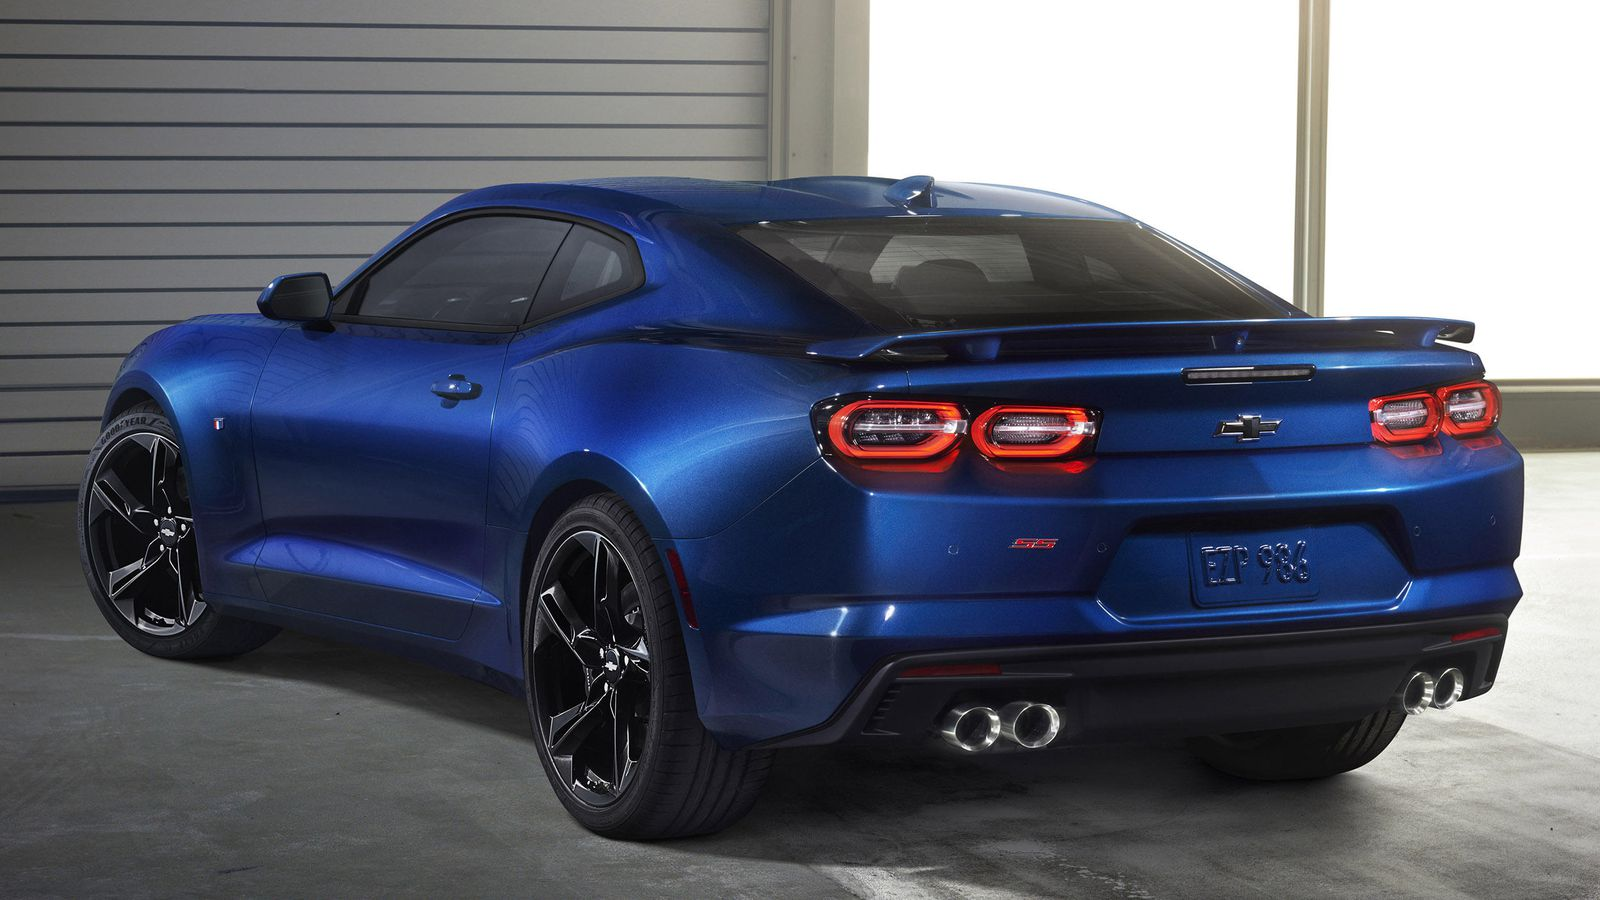 47 New 2019 Chevy Camaro Release Date and Concept